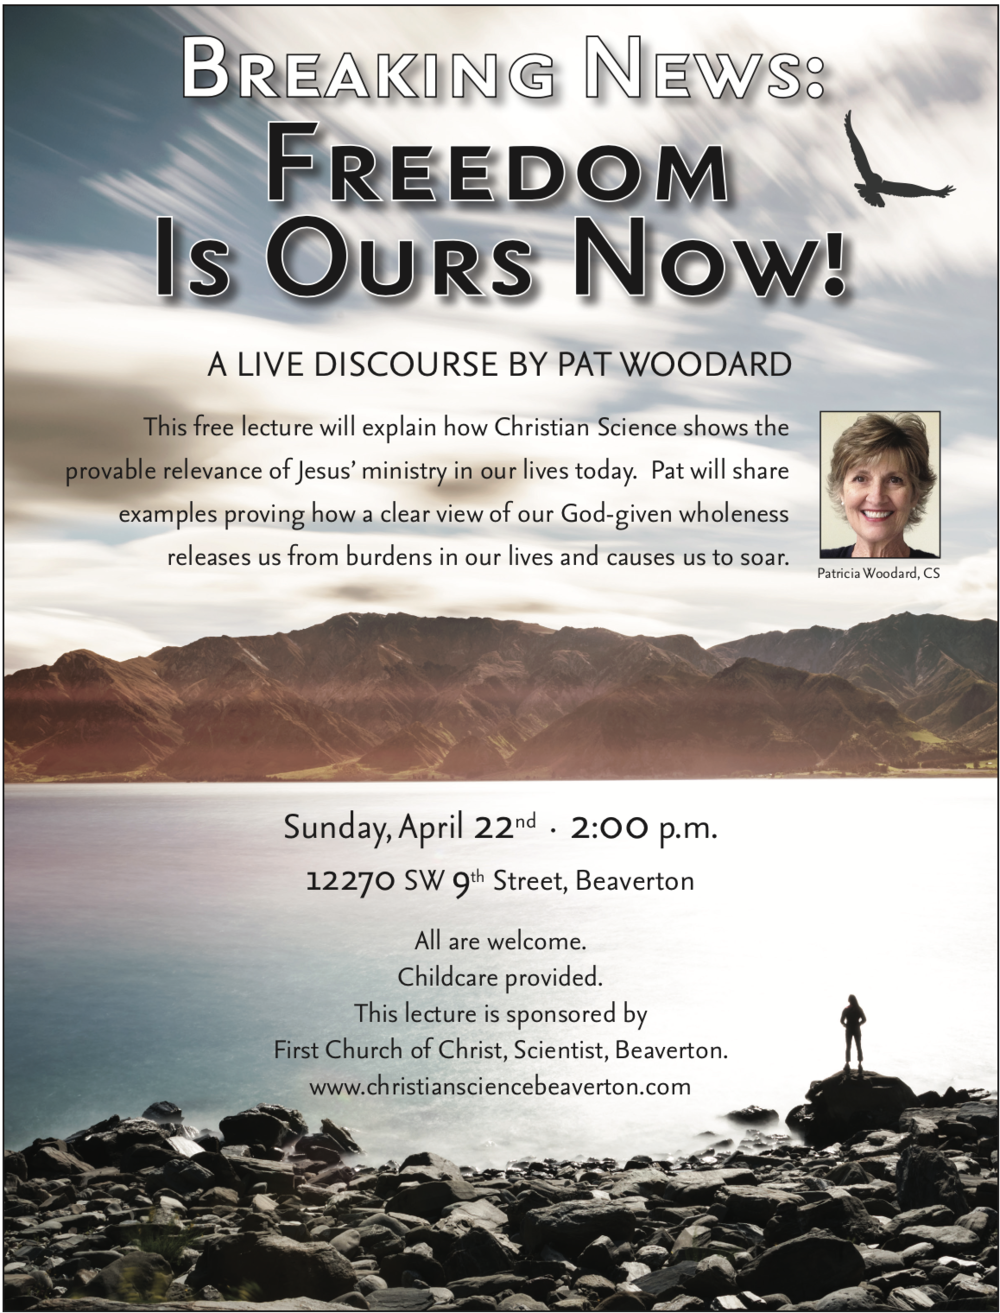 Freedom is Ours Patricia Woodard CS 2018-04-15 at 2.46.16 PM.png